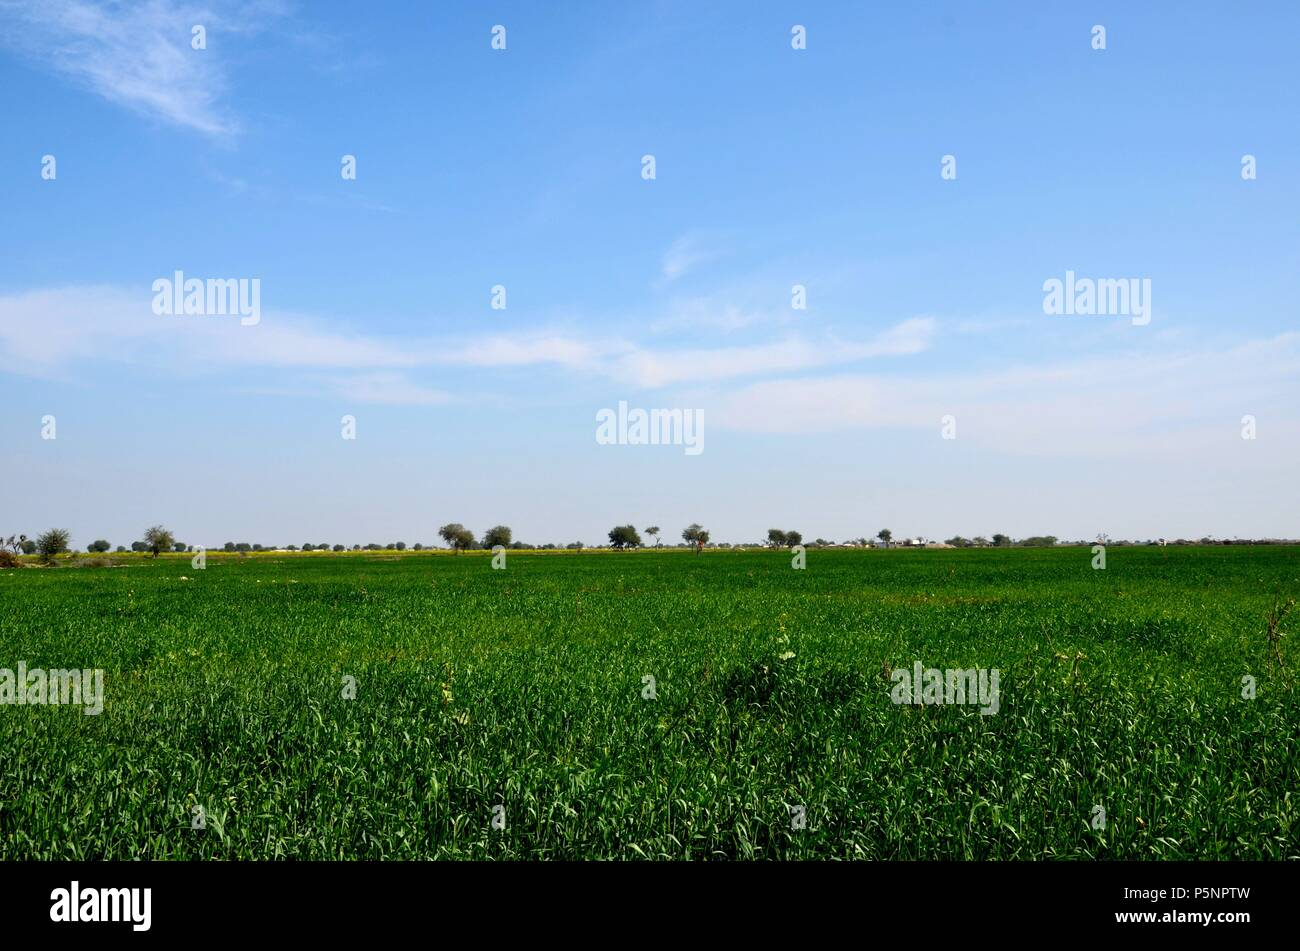 Lush green farm fields with crops and horizon in rural Sindh Mirpurkhas Pakistan - Stock Image